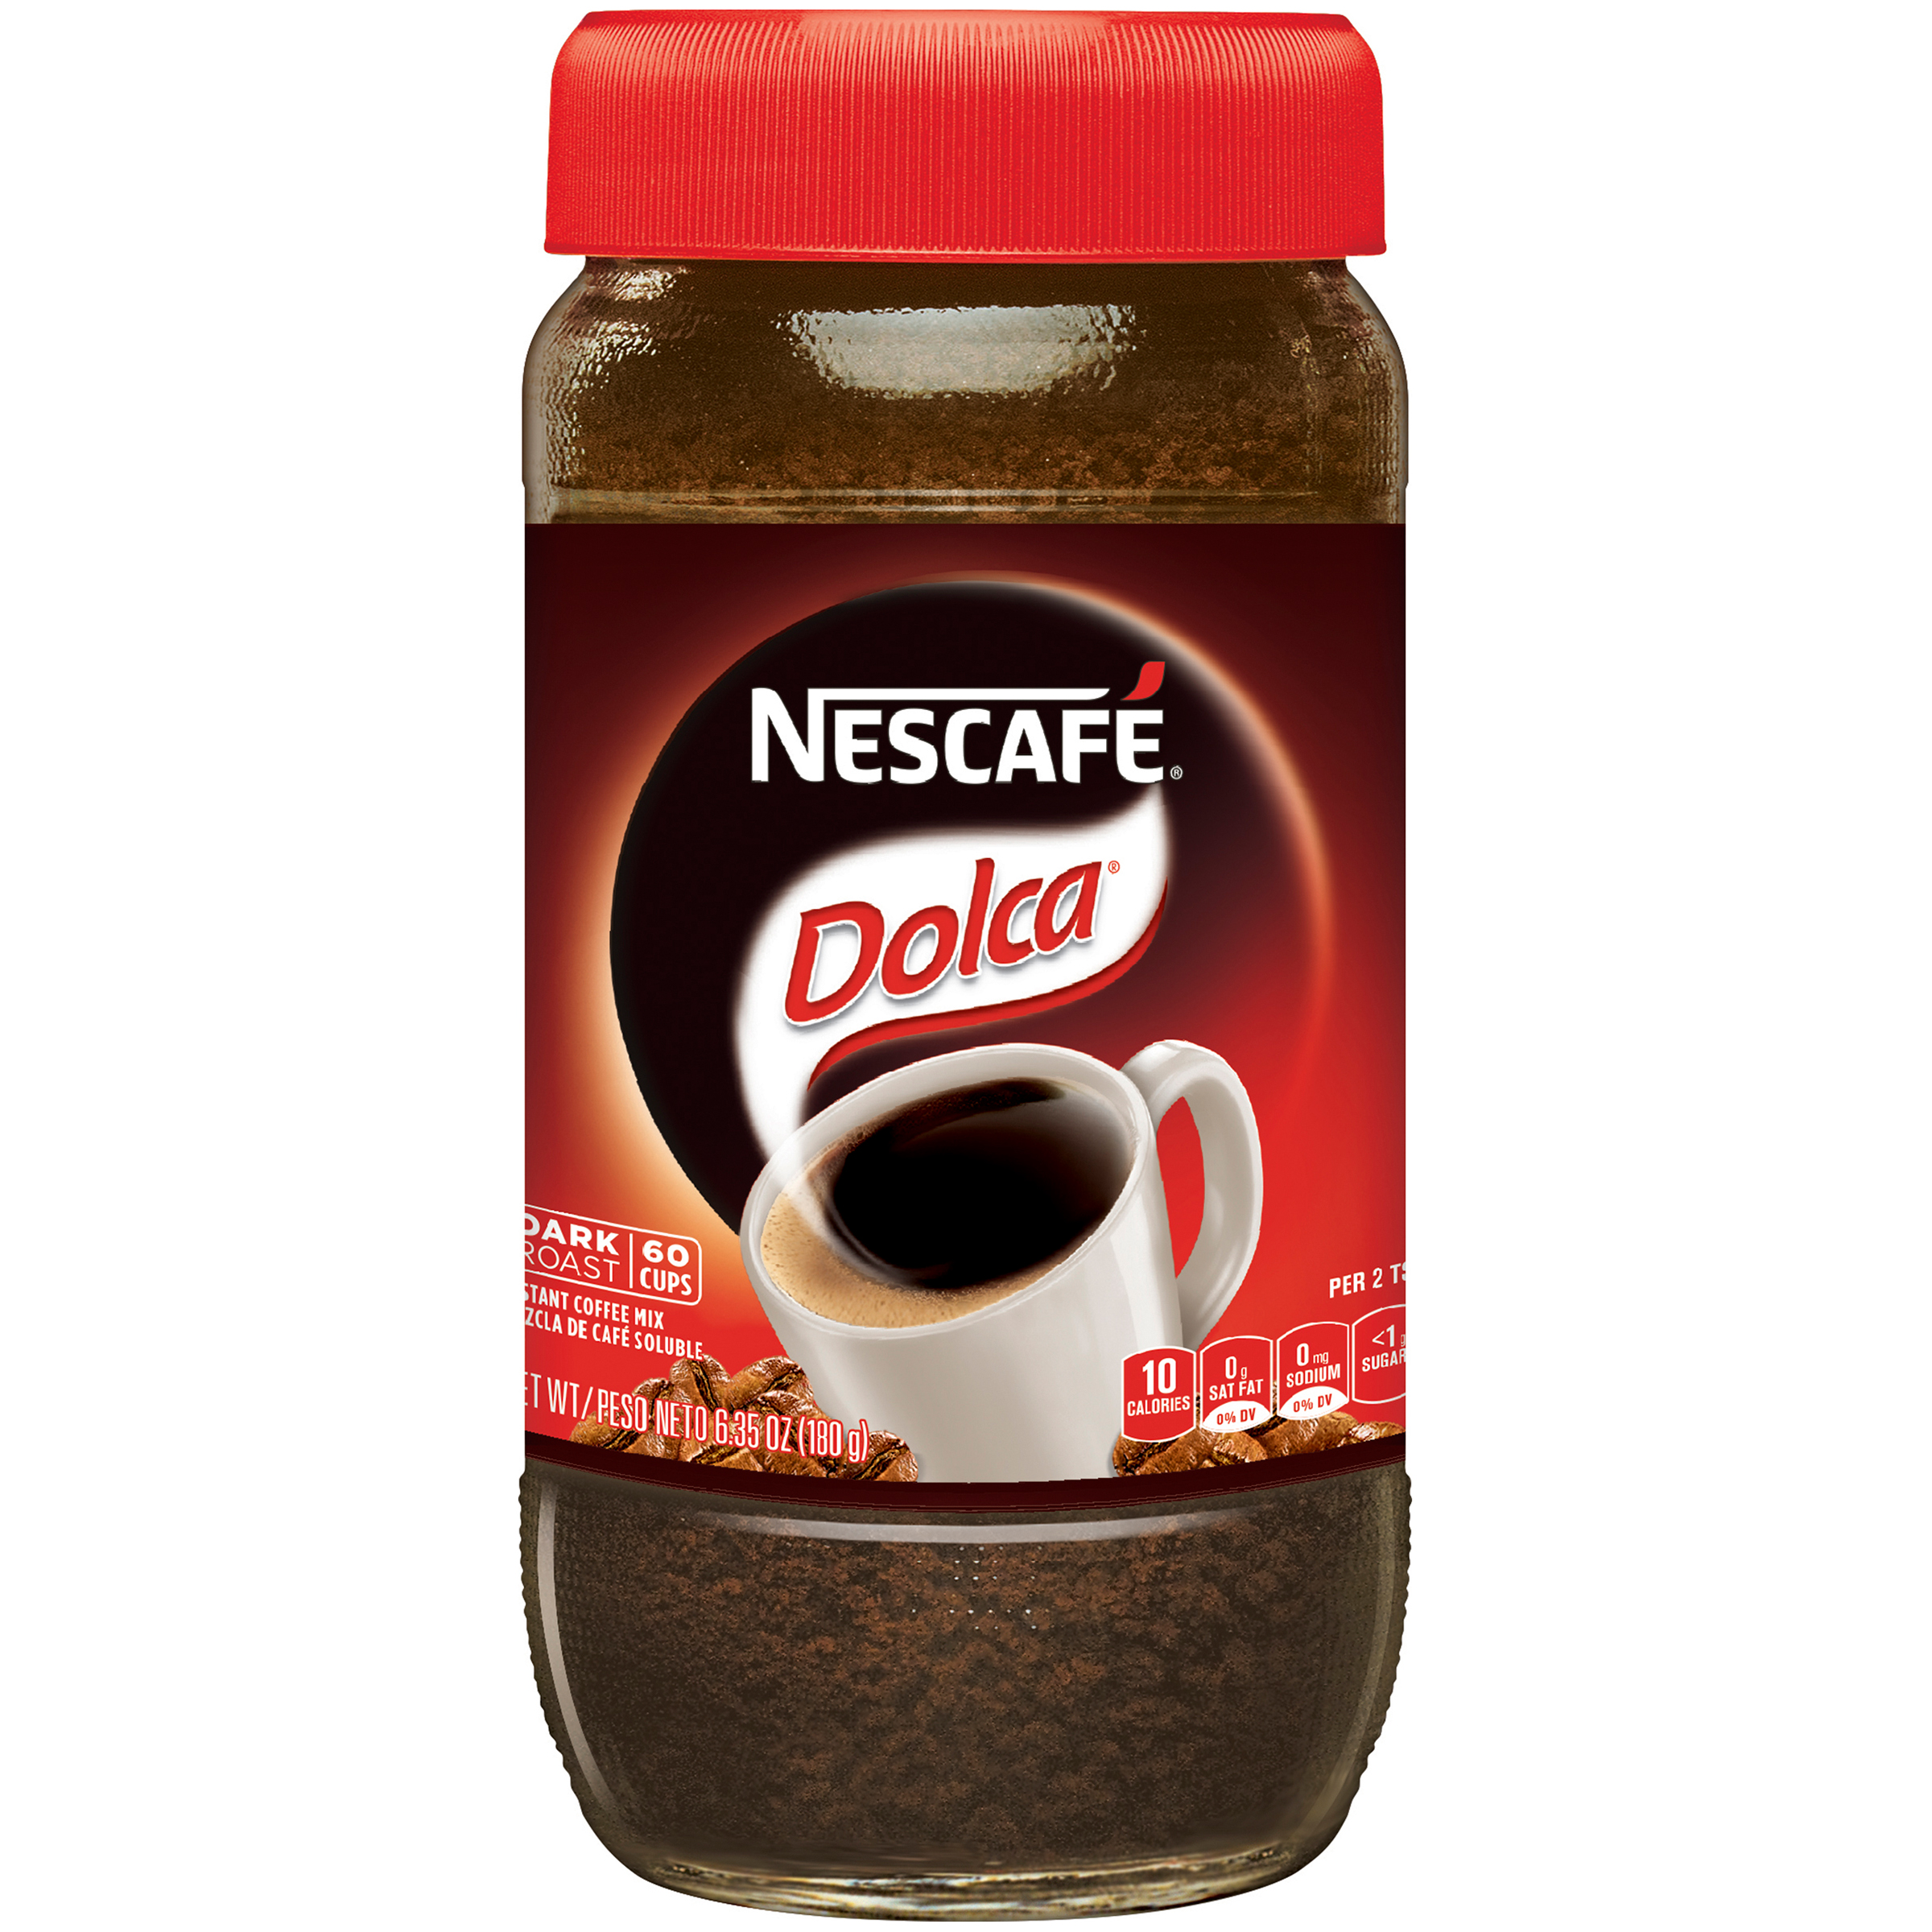 NESCAFE DOLCA Instant Coffee Mix 6.34 oz. Jar